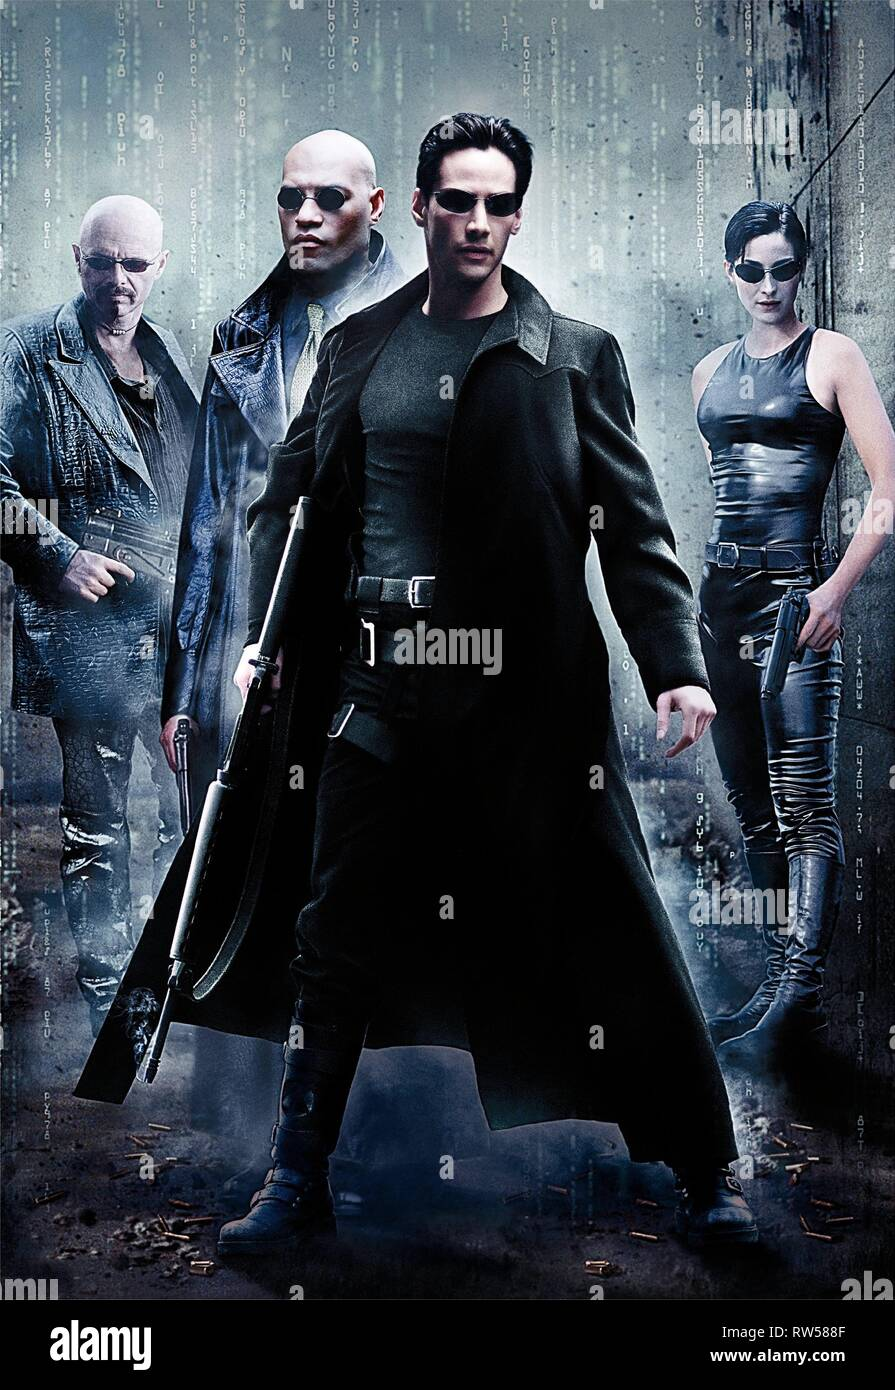 FISHBURNE,REEVES,MOSS, THE MATRIX, 1999 - Stock Image